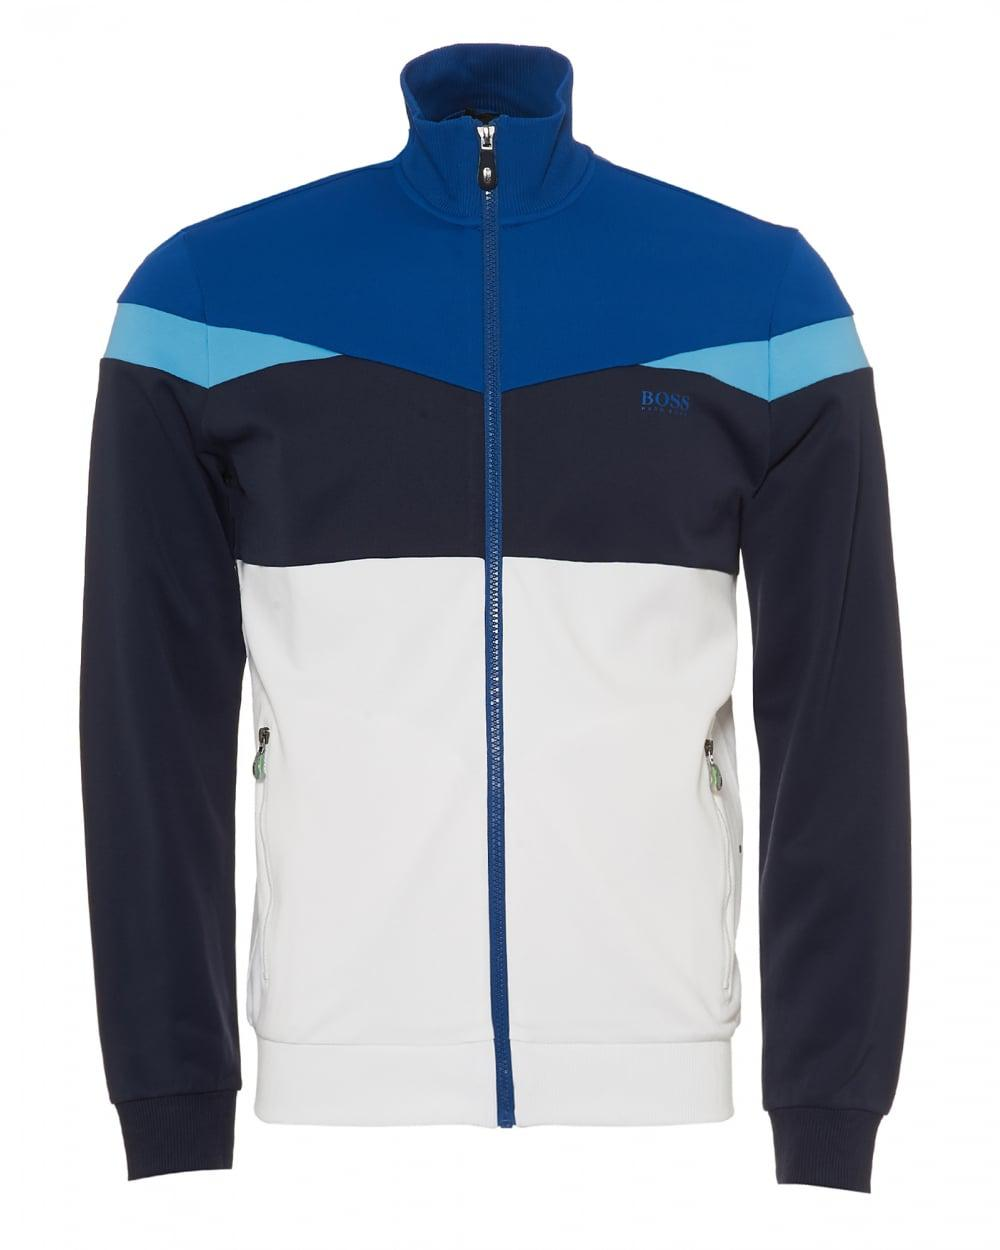 8963e0b8 Lyst - BOSS Skarley Tracktop, Abstract Panels Navy White Blue ...